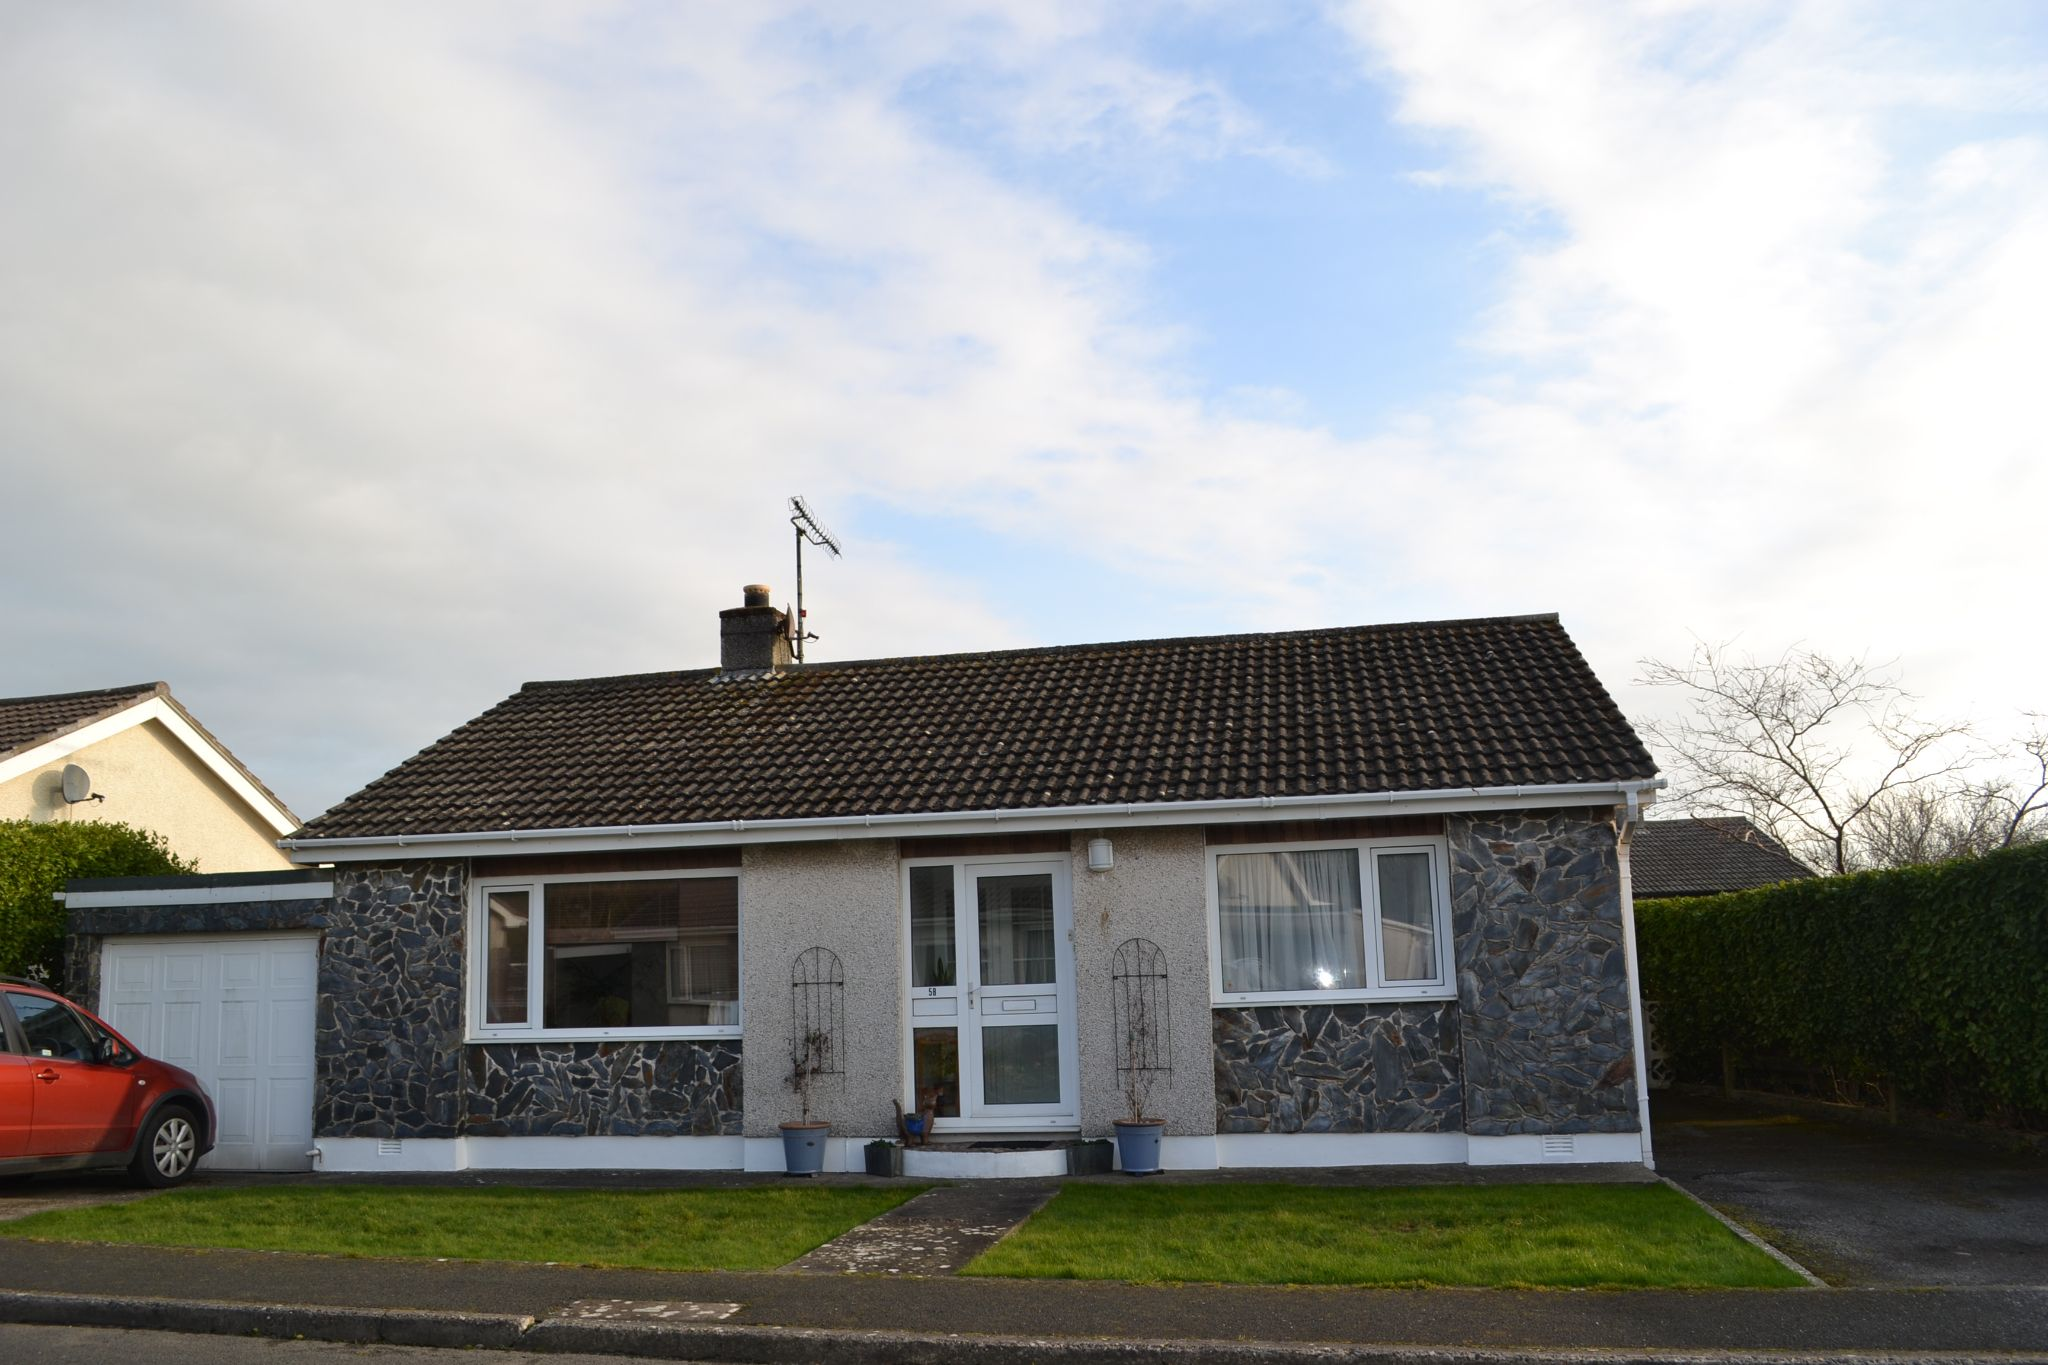 2 bedroom detached bungalow SSTC in Ballasalla - Photograph 1